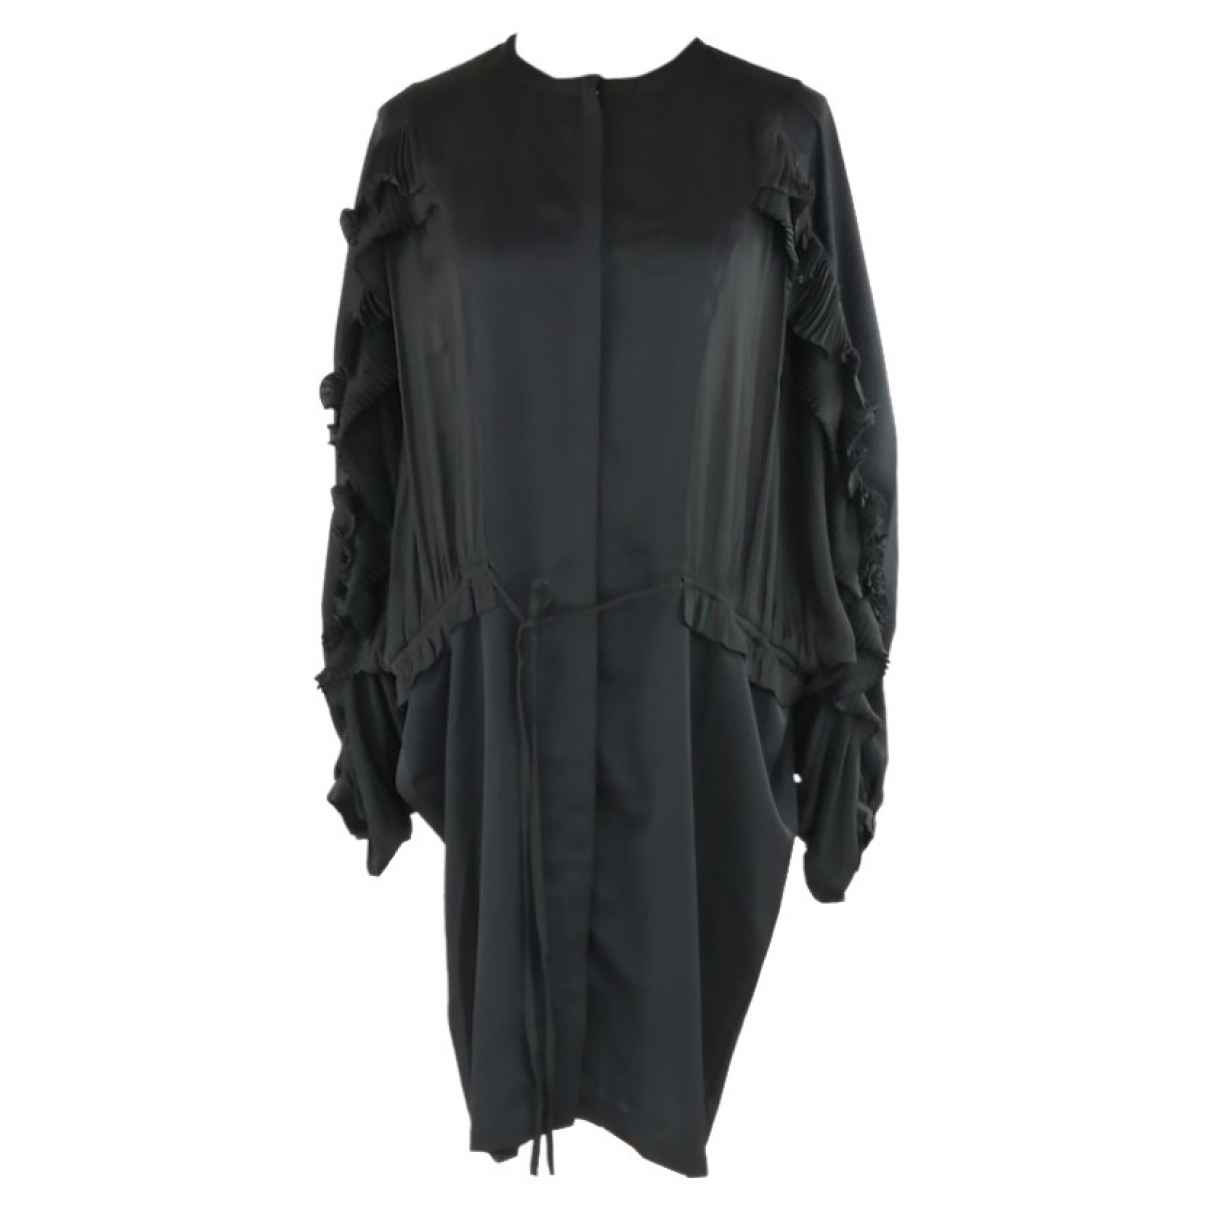 Givenchy \N Black dress for Women 38 IT